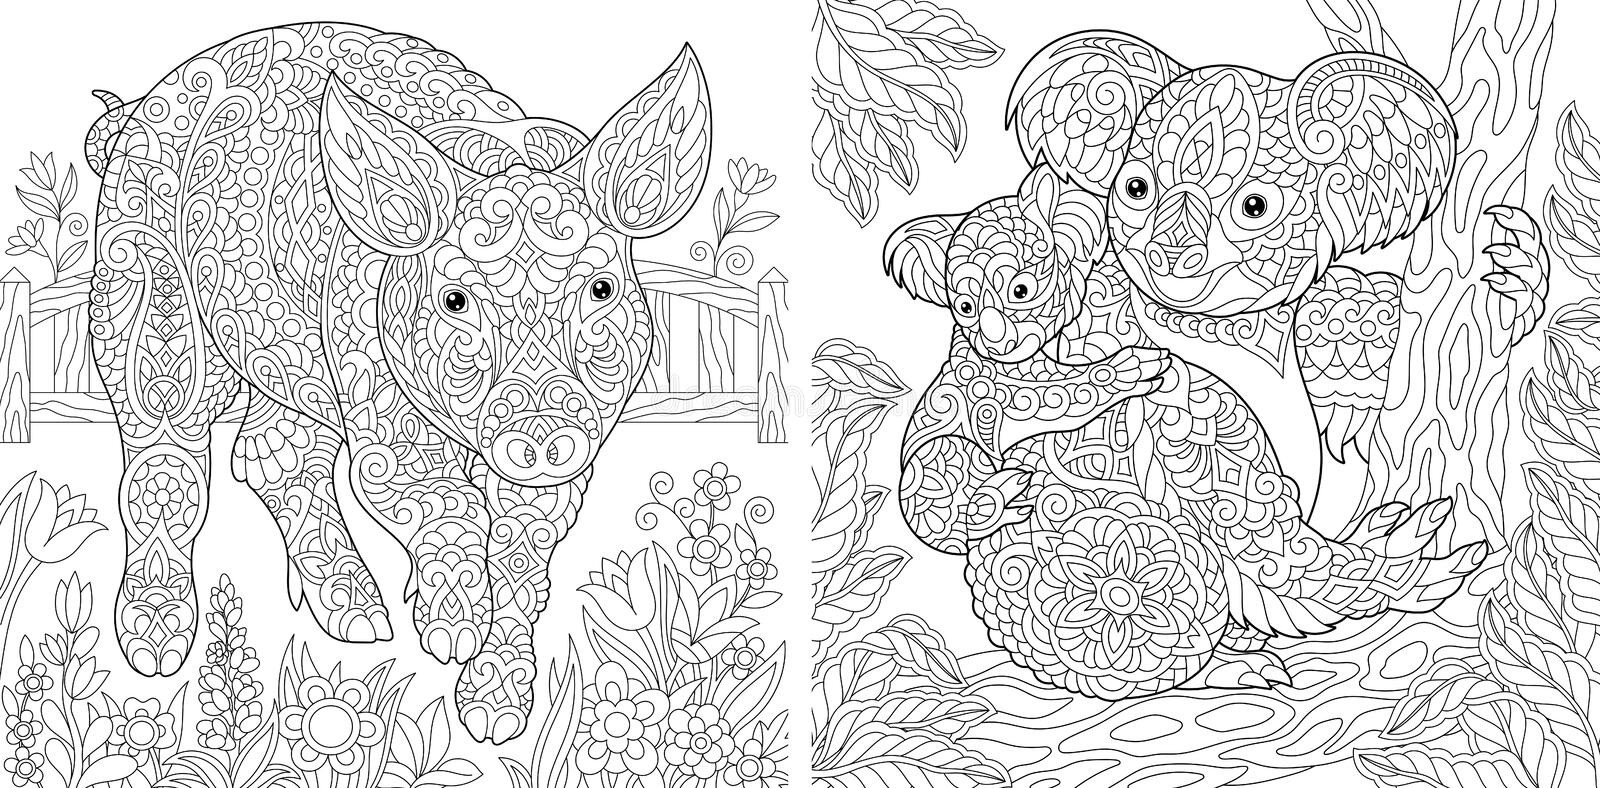 Coloring Pages. Coloring Book for adults. Cute Pig - 2019 Chinese New Year symbol. Colouring picture with koala bears. Antistress stock illustration